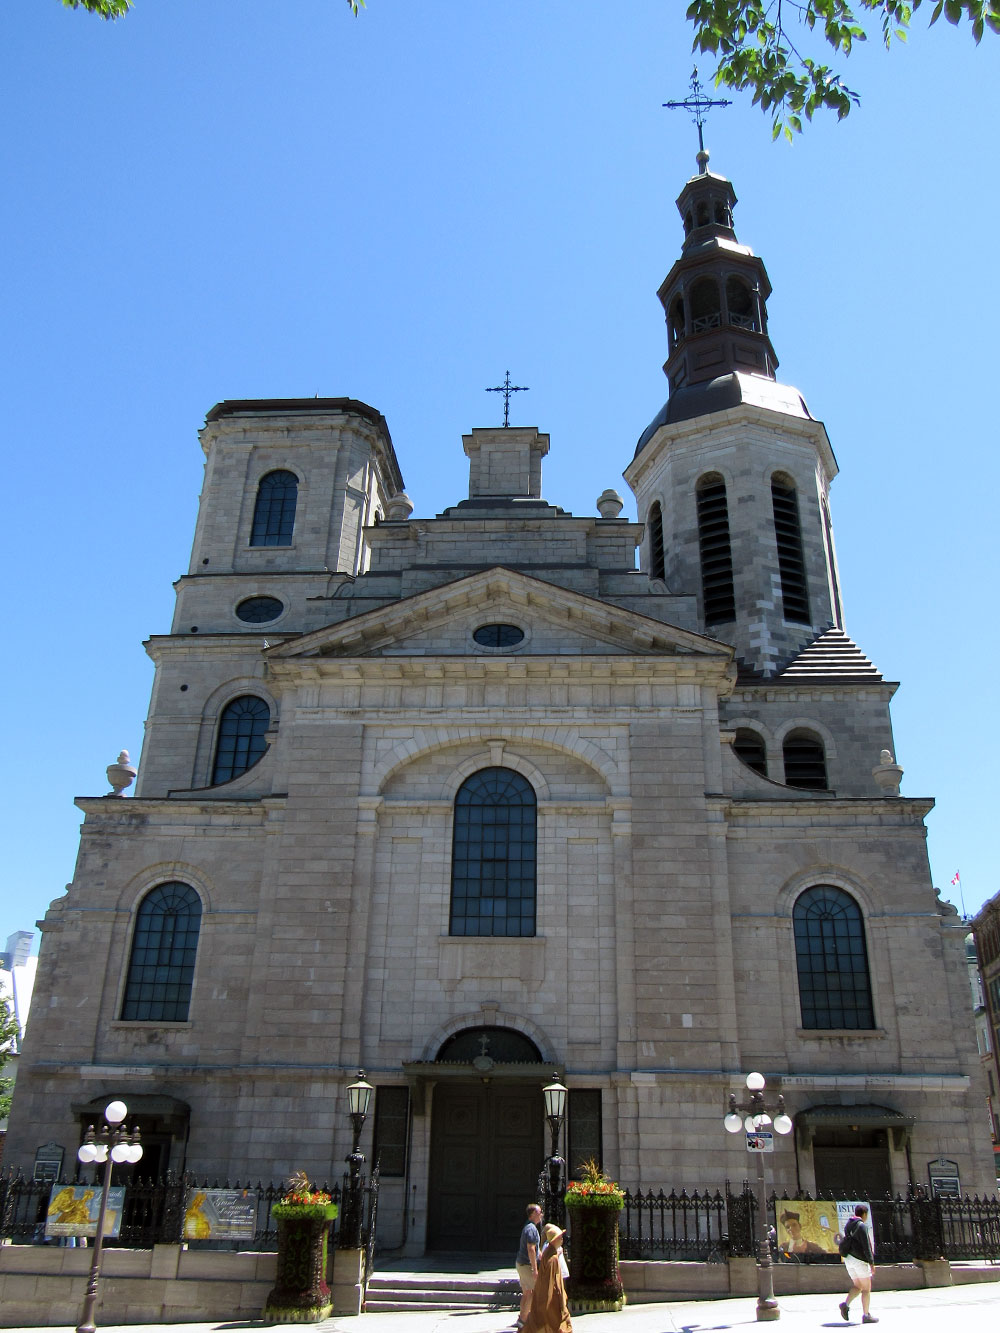 There's more to the eye than just a church in Cathedral-Basilica of Notre-Dame